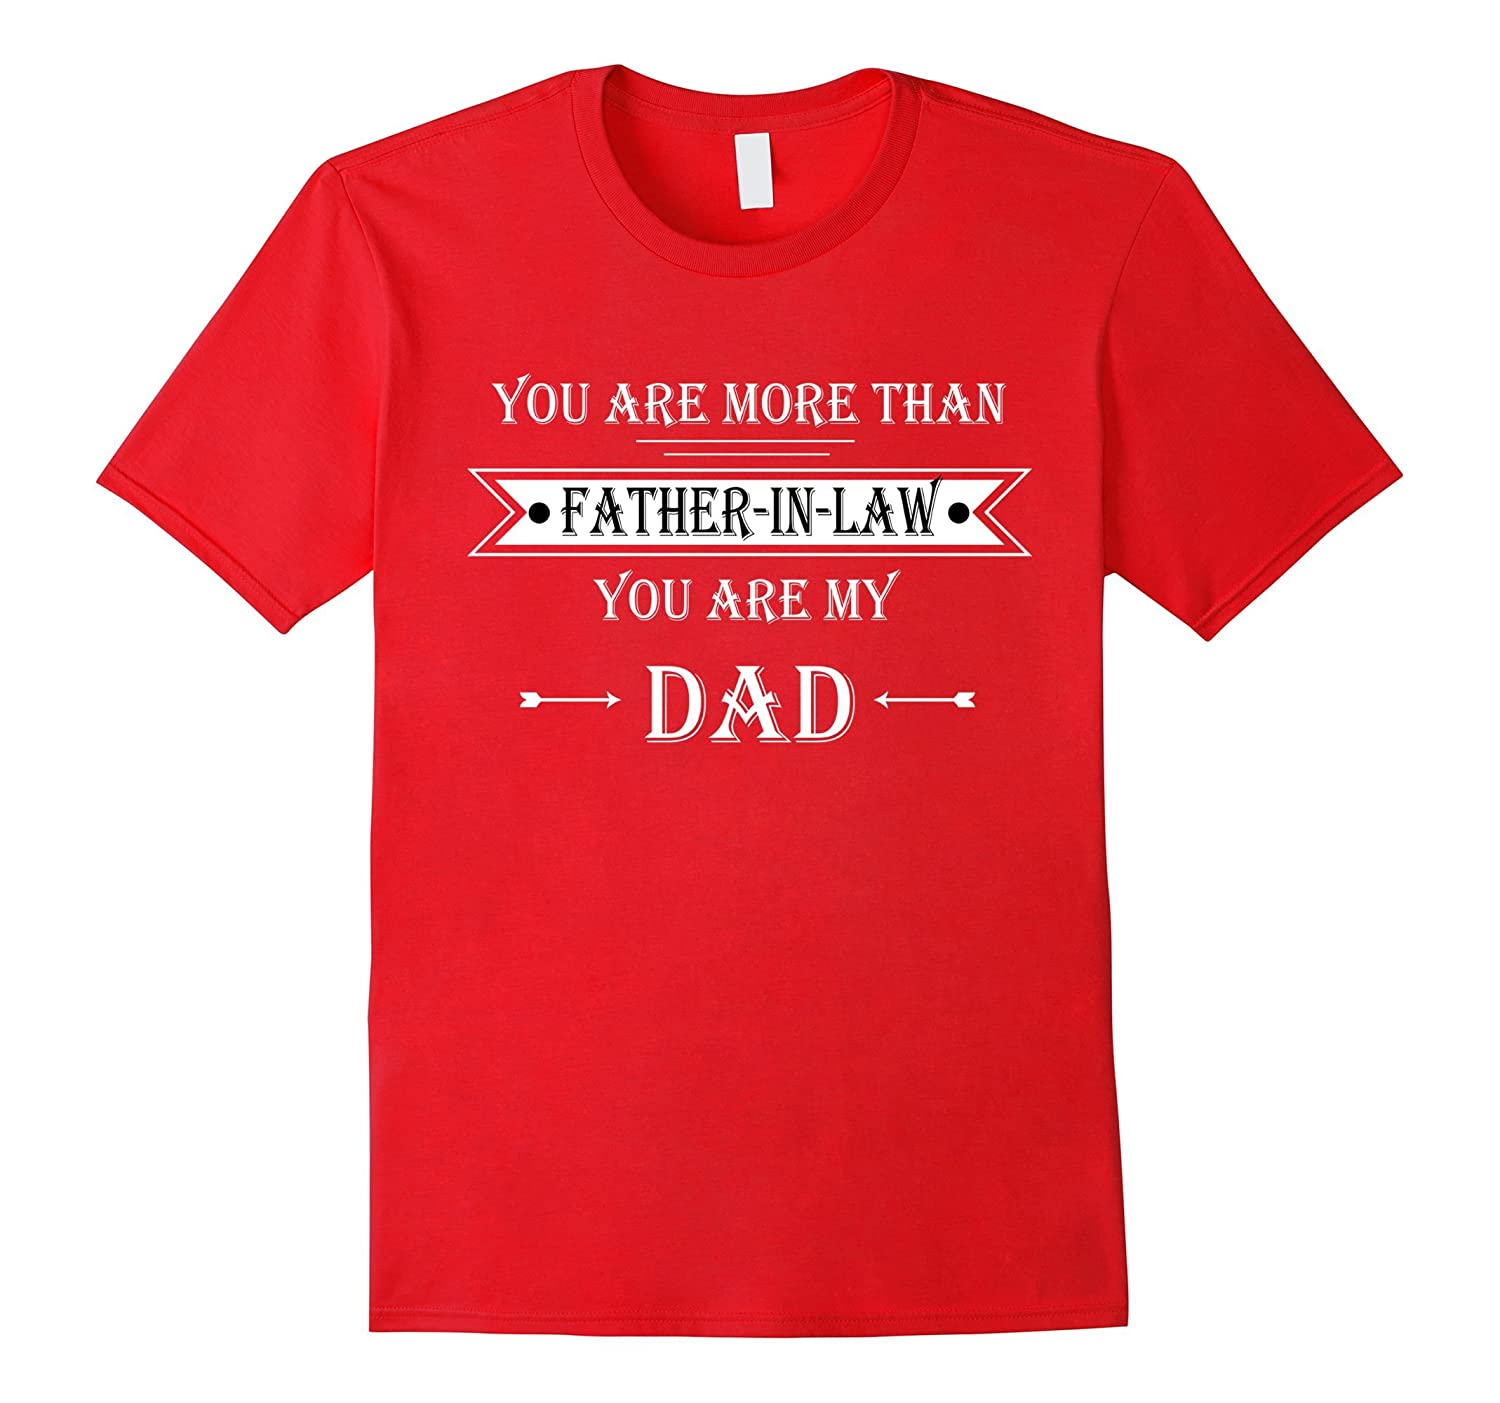 YOU ARE MORE THAN FATHER-IN-LAW YOU ARE MY DAD